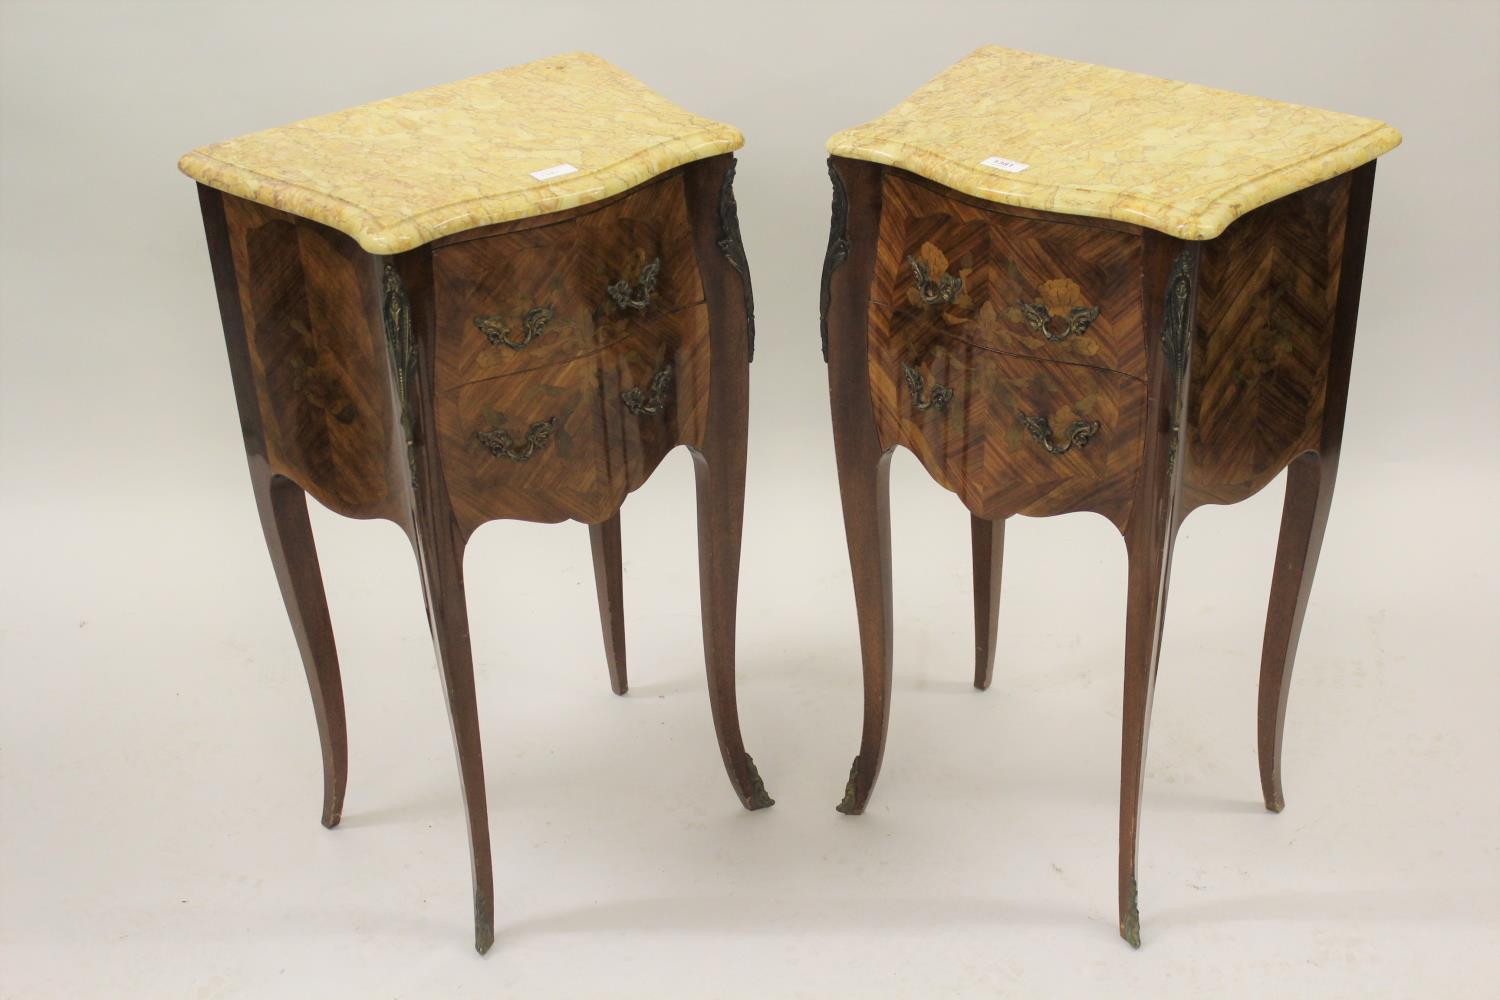 Pair of 20th Century French Kingwood marquetry inlaid and gilt brass mounted serpentine shaped - Image 2 of 7